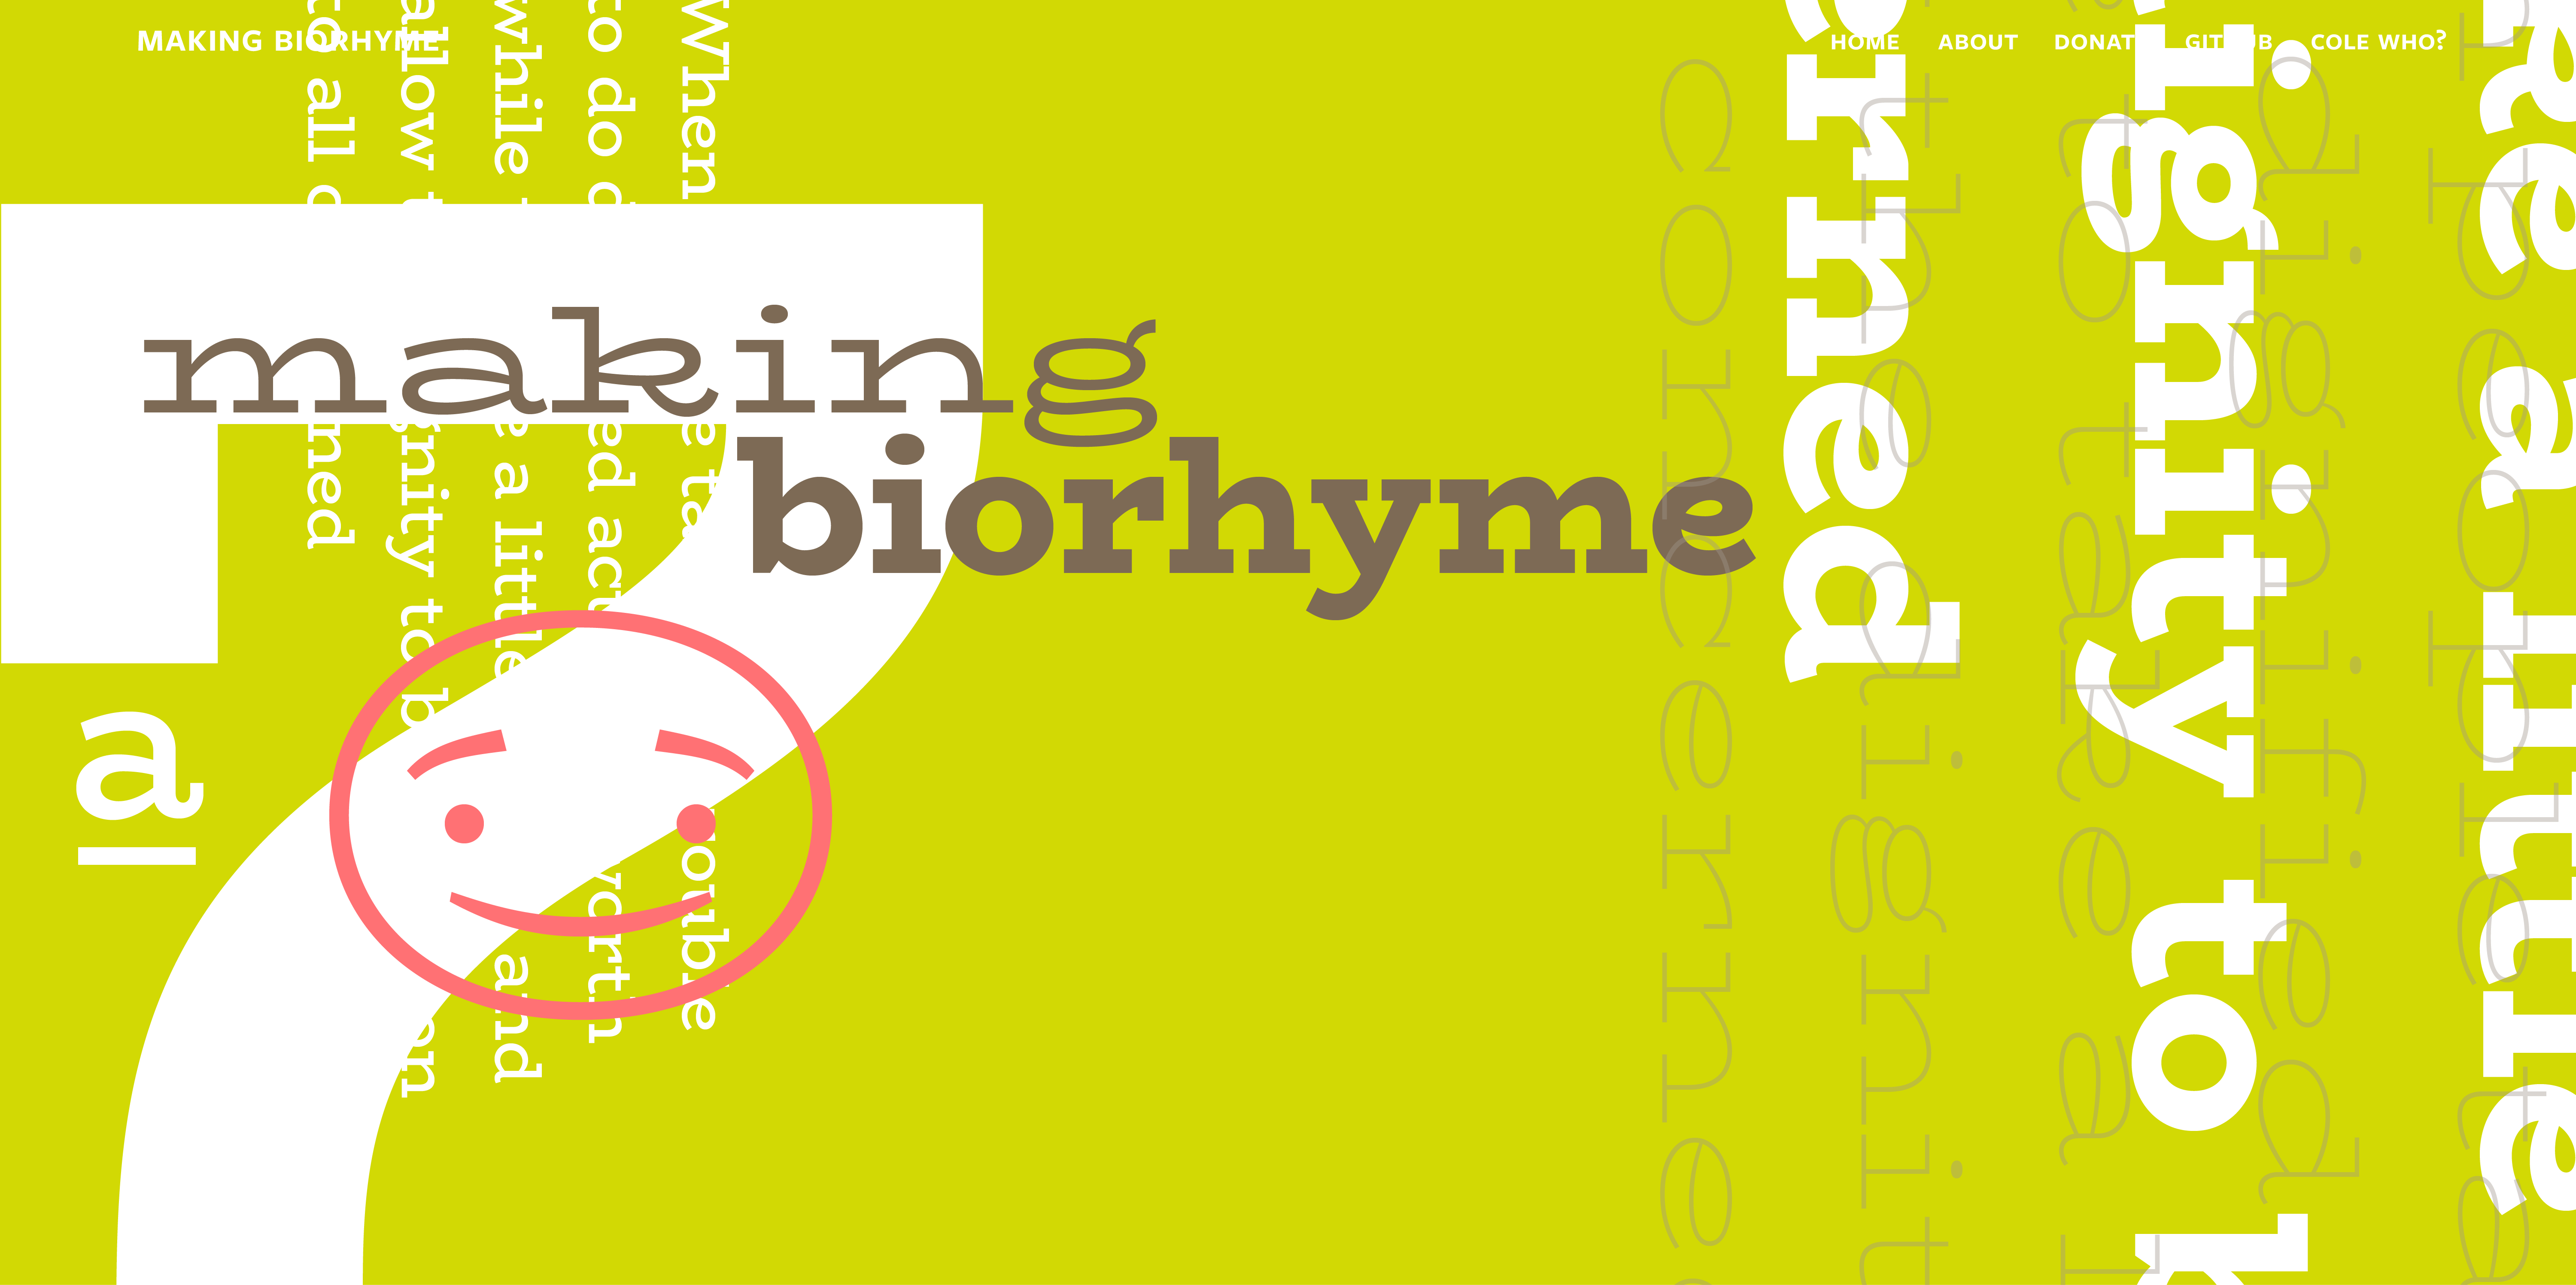 BioRhyme Expanded Font Free by Aoife Mooney » Font Squirrel